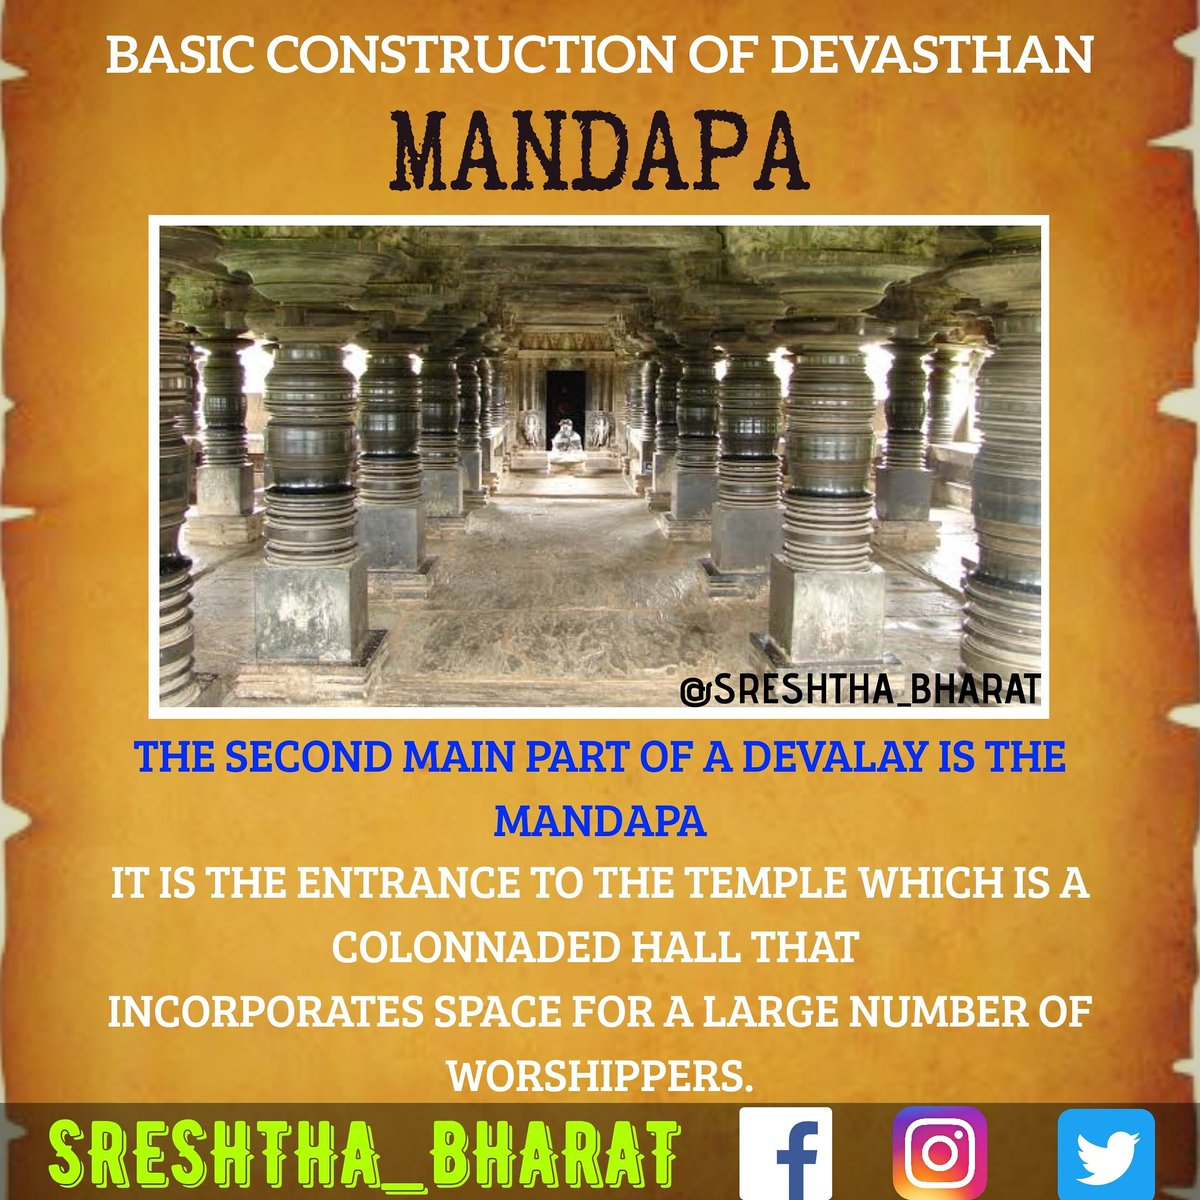 #temple_architecture  We will be getting closer to the Great Temple Architecture of our Sreshtha Bharat  Follow @Sreshthabharat on Facebook | Instagram | Twitter 🙏  #indianculture #indianarchitecture #hinduarchitecture #temple  #worship #templeworship #dravida #mandir #devasthan https://t.co/UNm2i7kEBJ